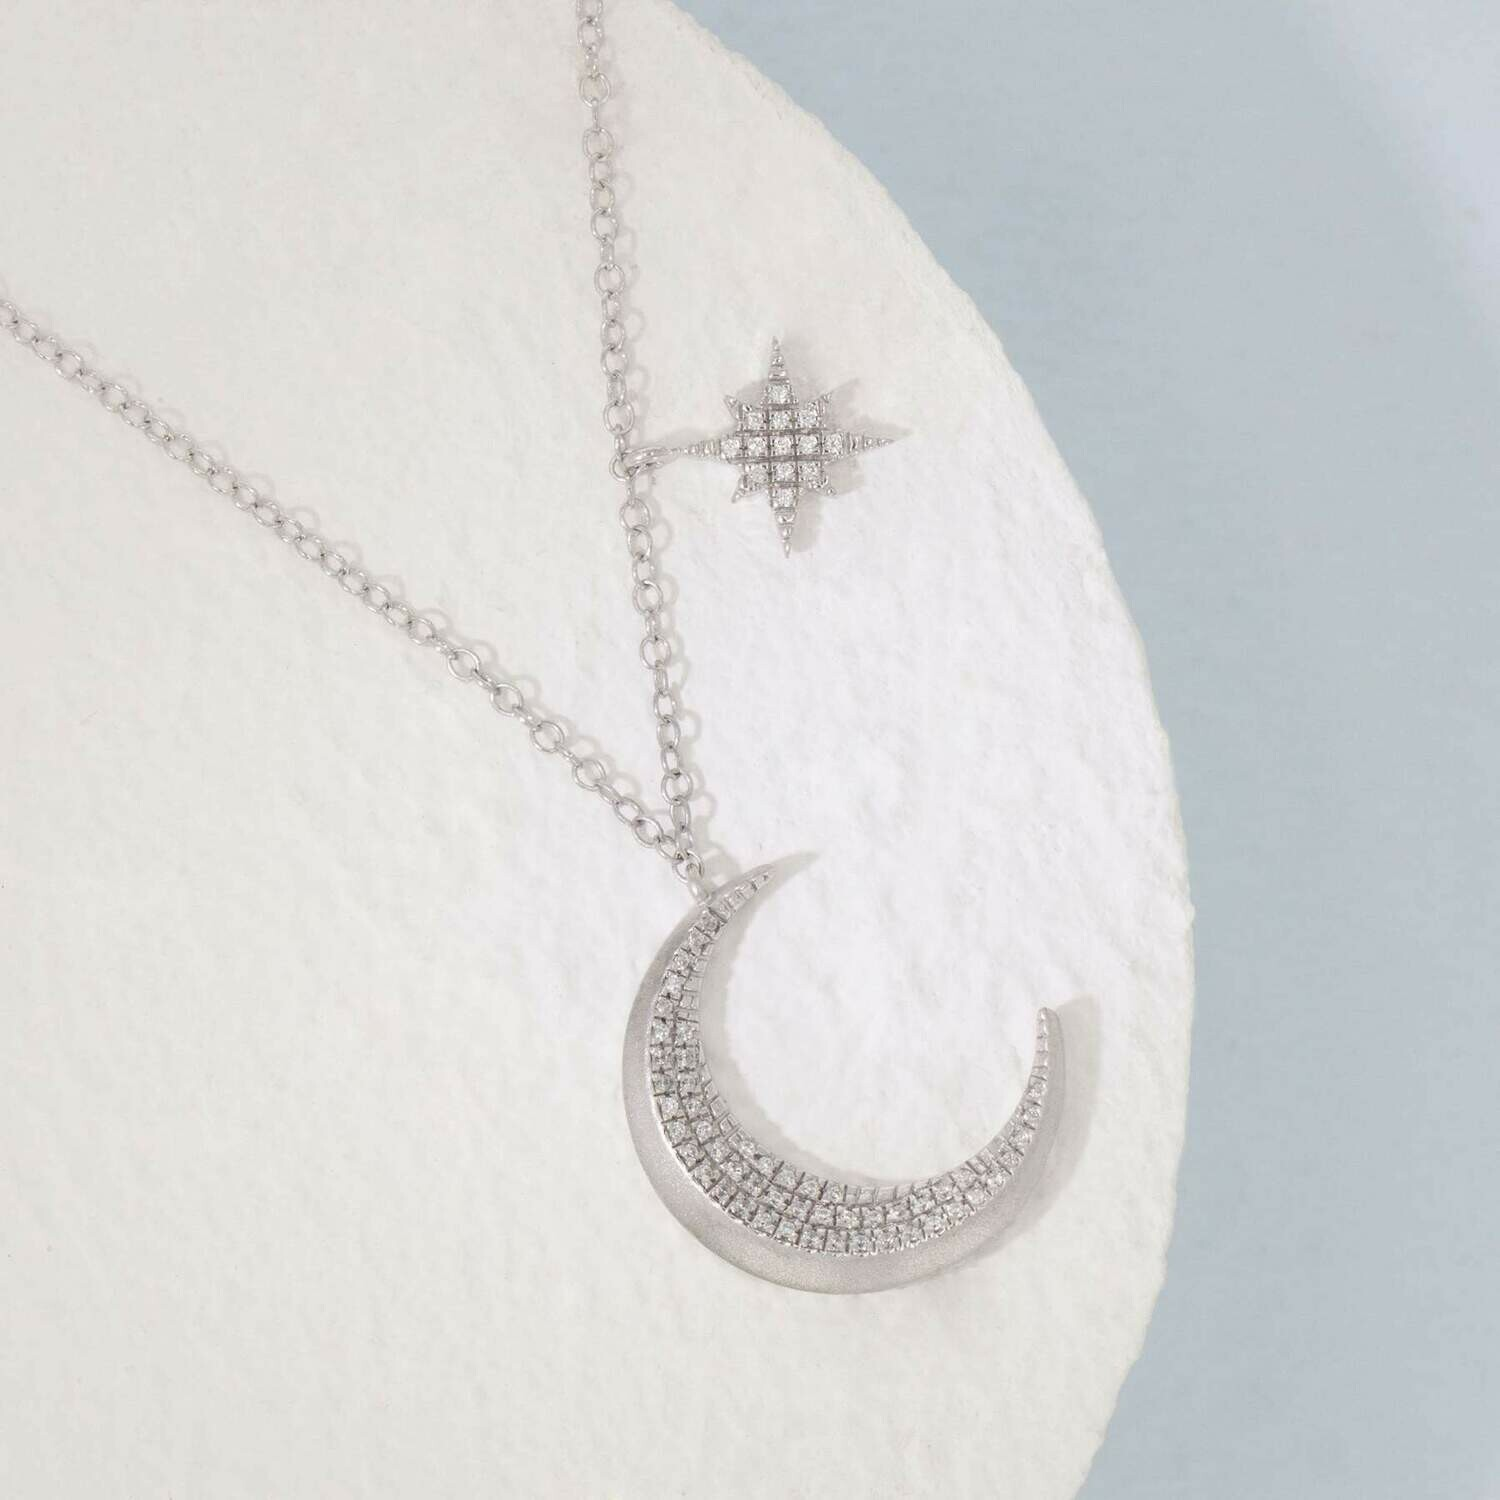 Ella Stein Fly Me To The Moon Necklace (Silver)